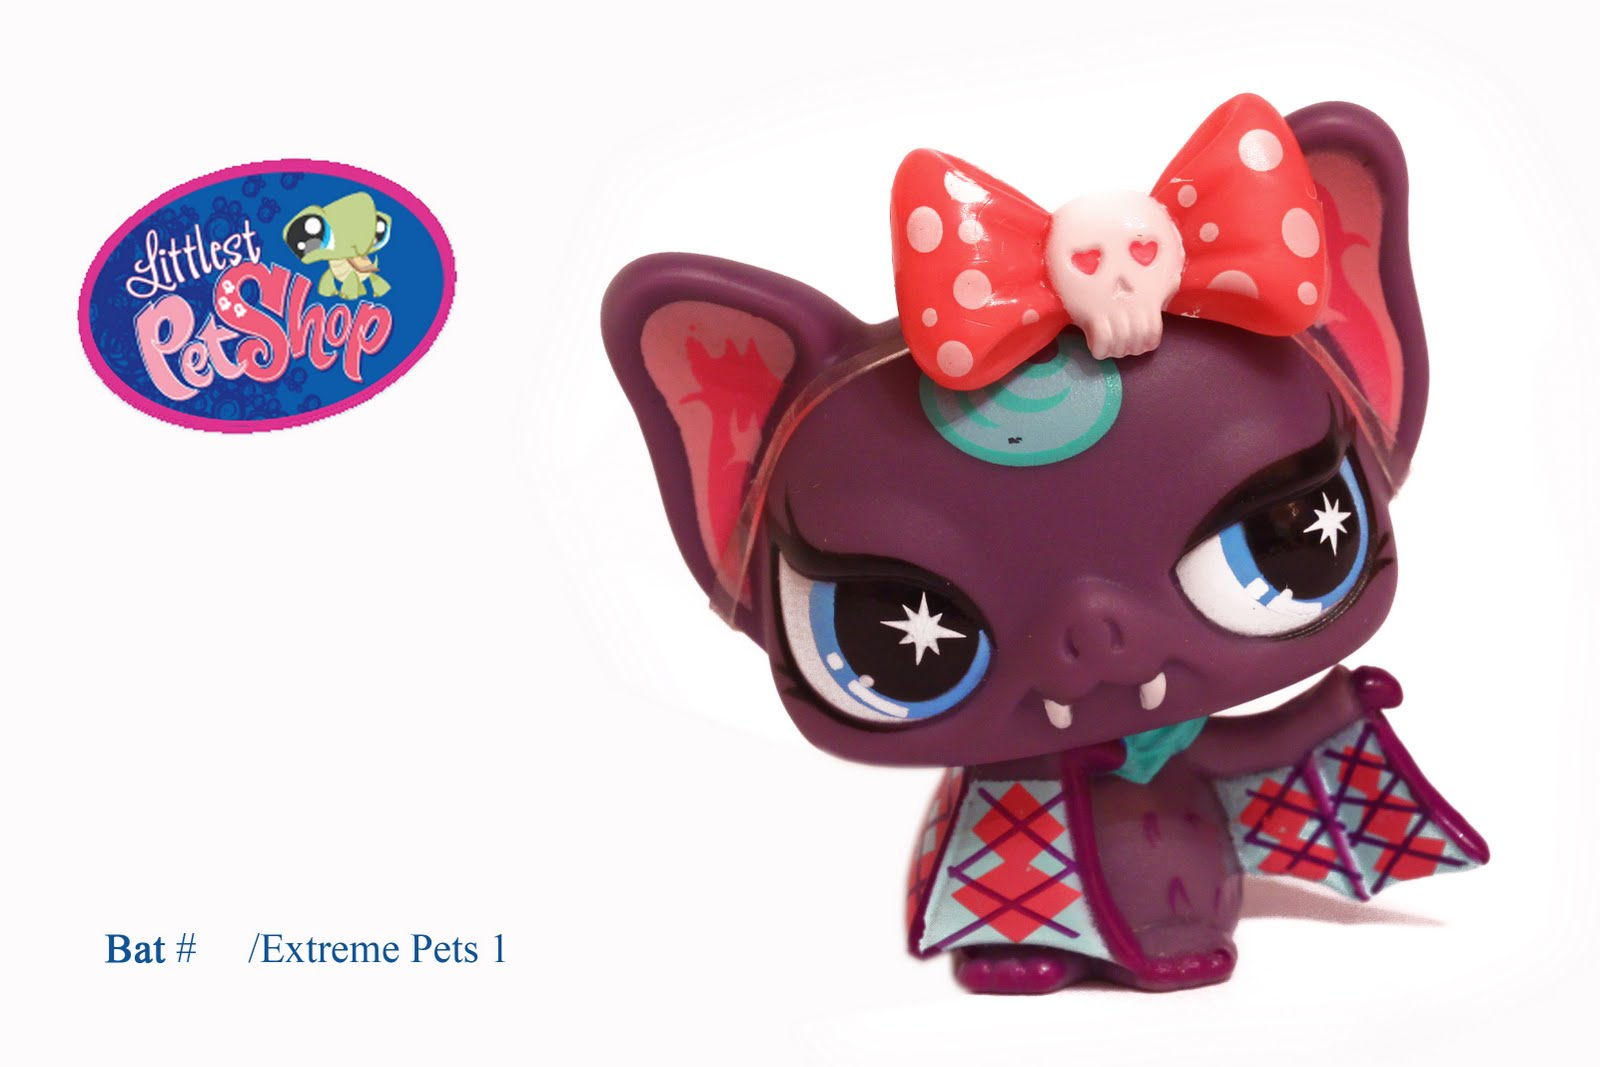 Buy Littlest Pet Shop #2 Collectors Pack of 8 Pets Frog, Parrot, Owl, Lion, Gecko, Ferret, Dog Cat: Action Figures - radiance-project.ml FREE DELIVERY possible on eligible purchases.